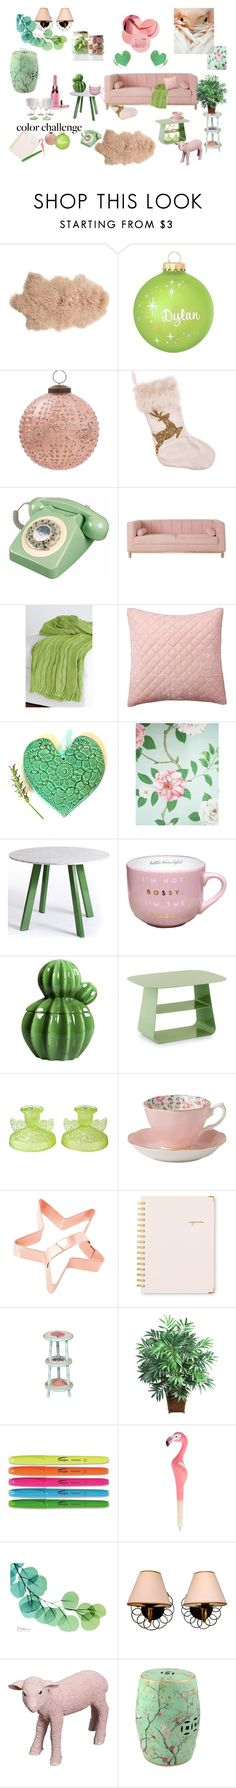 """""""Soft pastel combo- green & blush"""" by mariyushka on Polyvore featuring interior, interiors, interior design, home, home decor, interior decorating, Rizzy Home, Pottery Barn, SANDERSON and Blu Dot"""